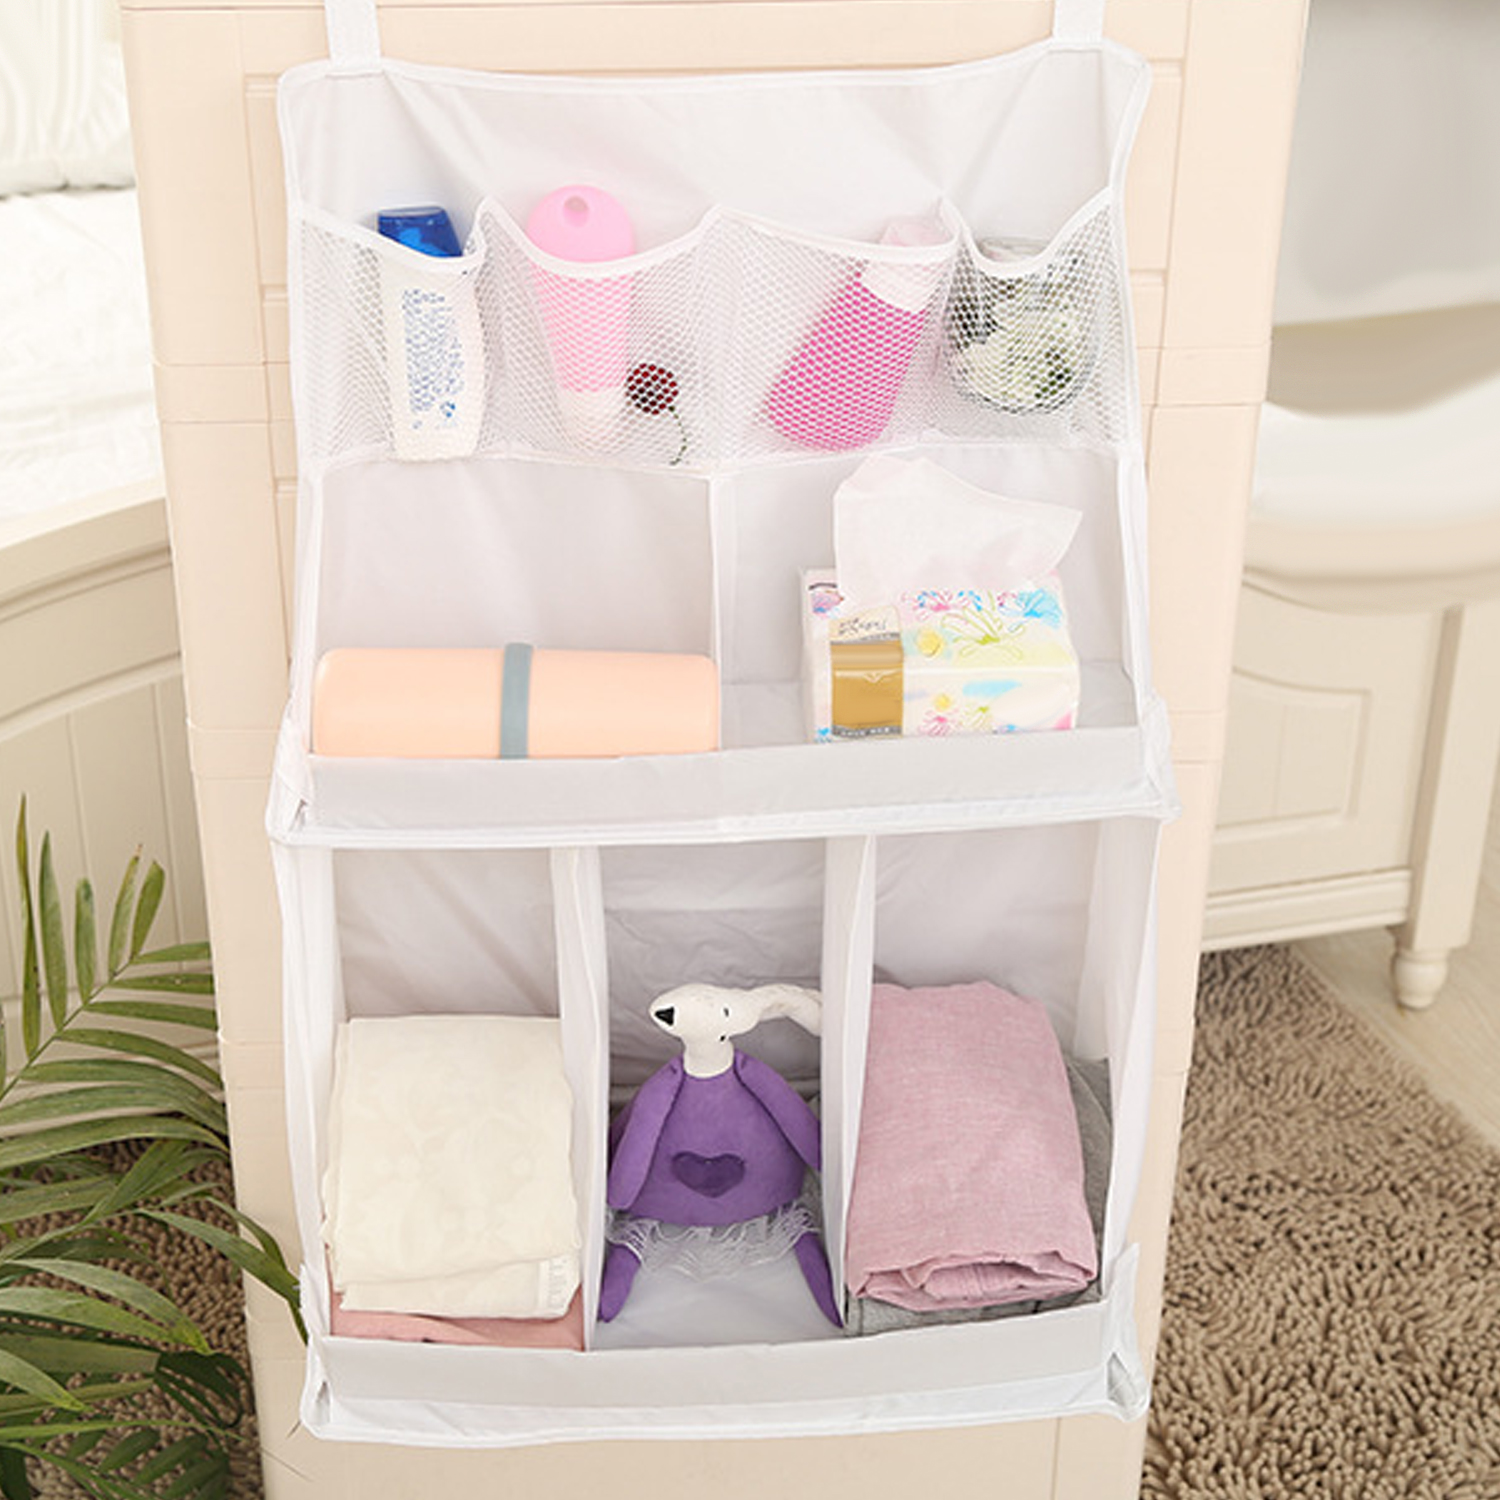 Behogar Portable Baby Crib Bed Hanging Diaper Bag Storage Organizer Pocket Accessories for Baby Wipe Bottle Nappy